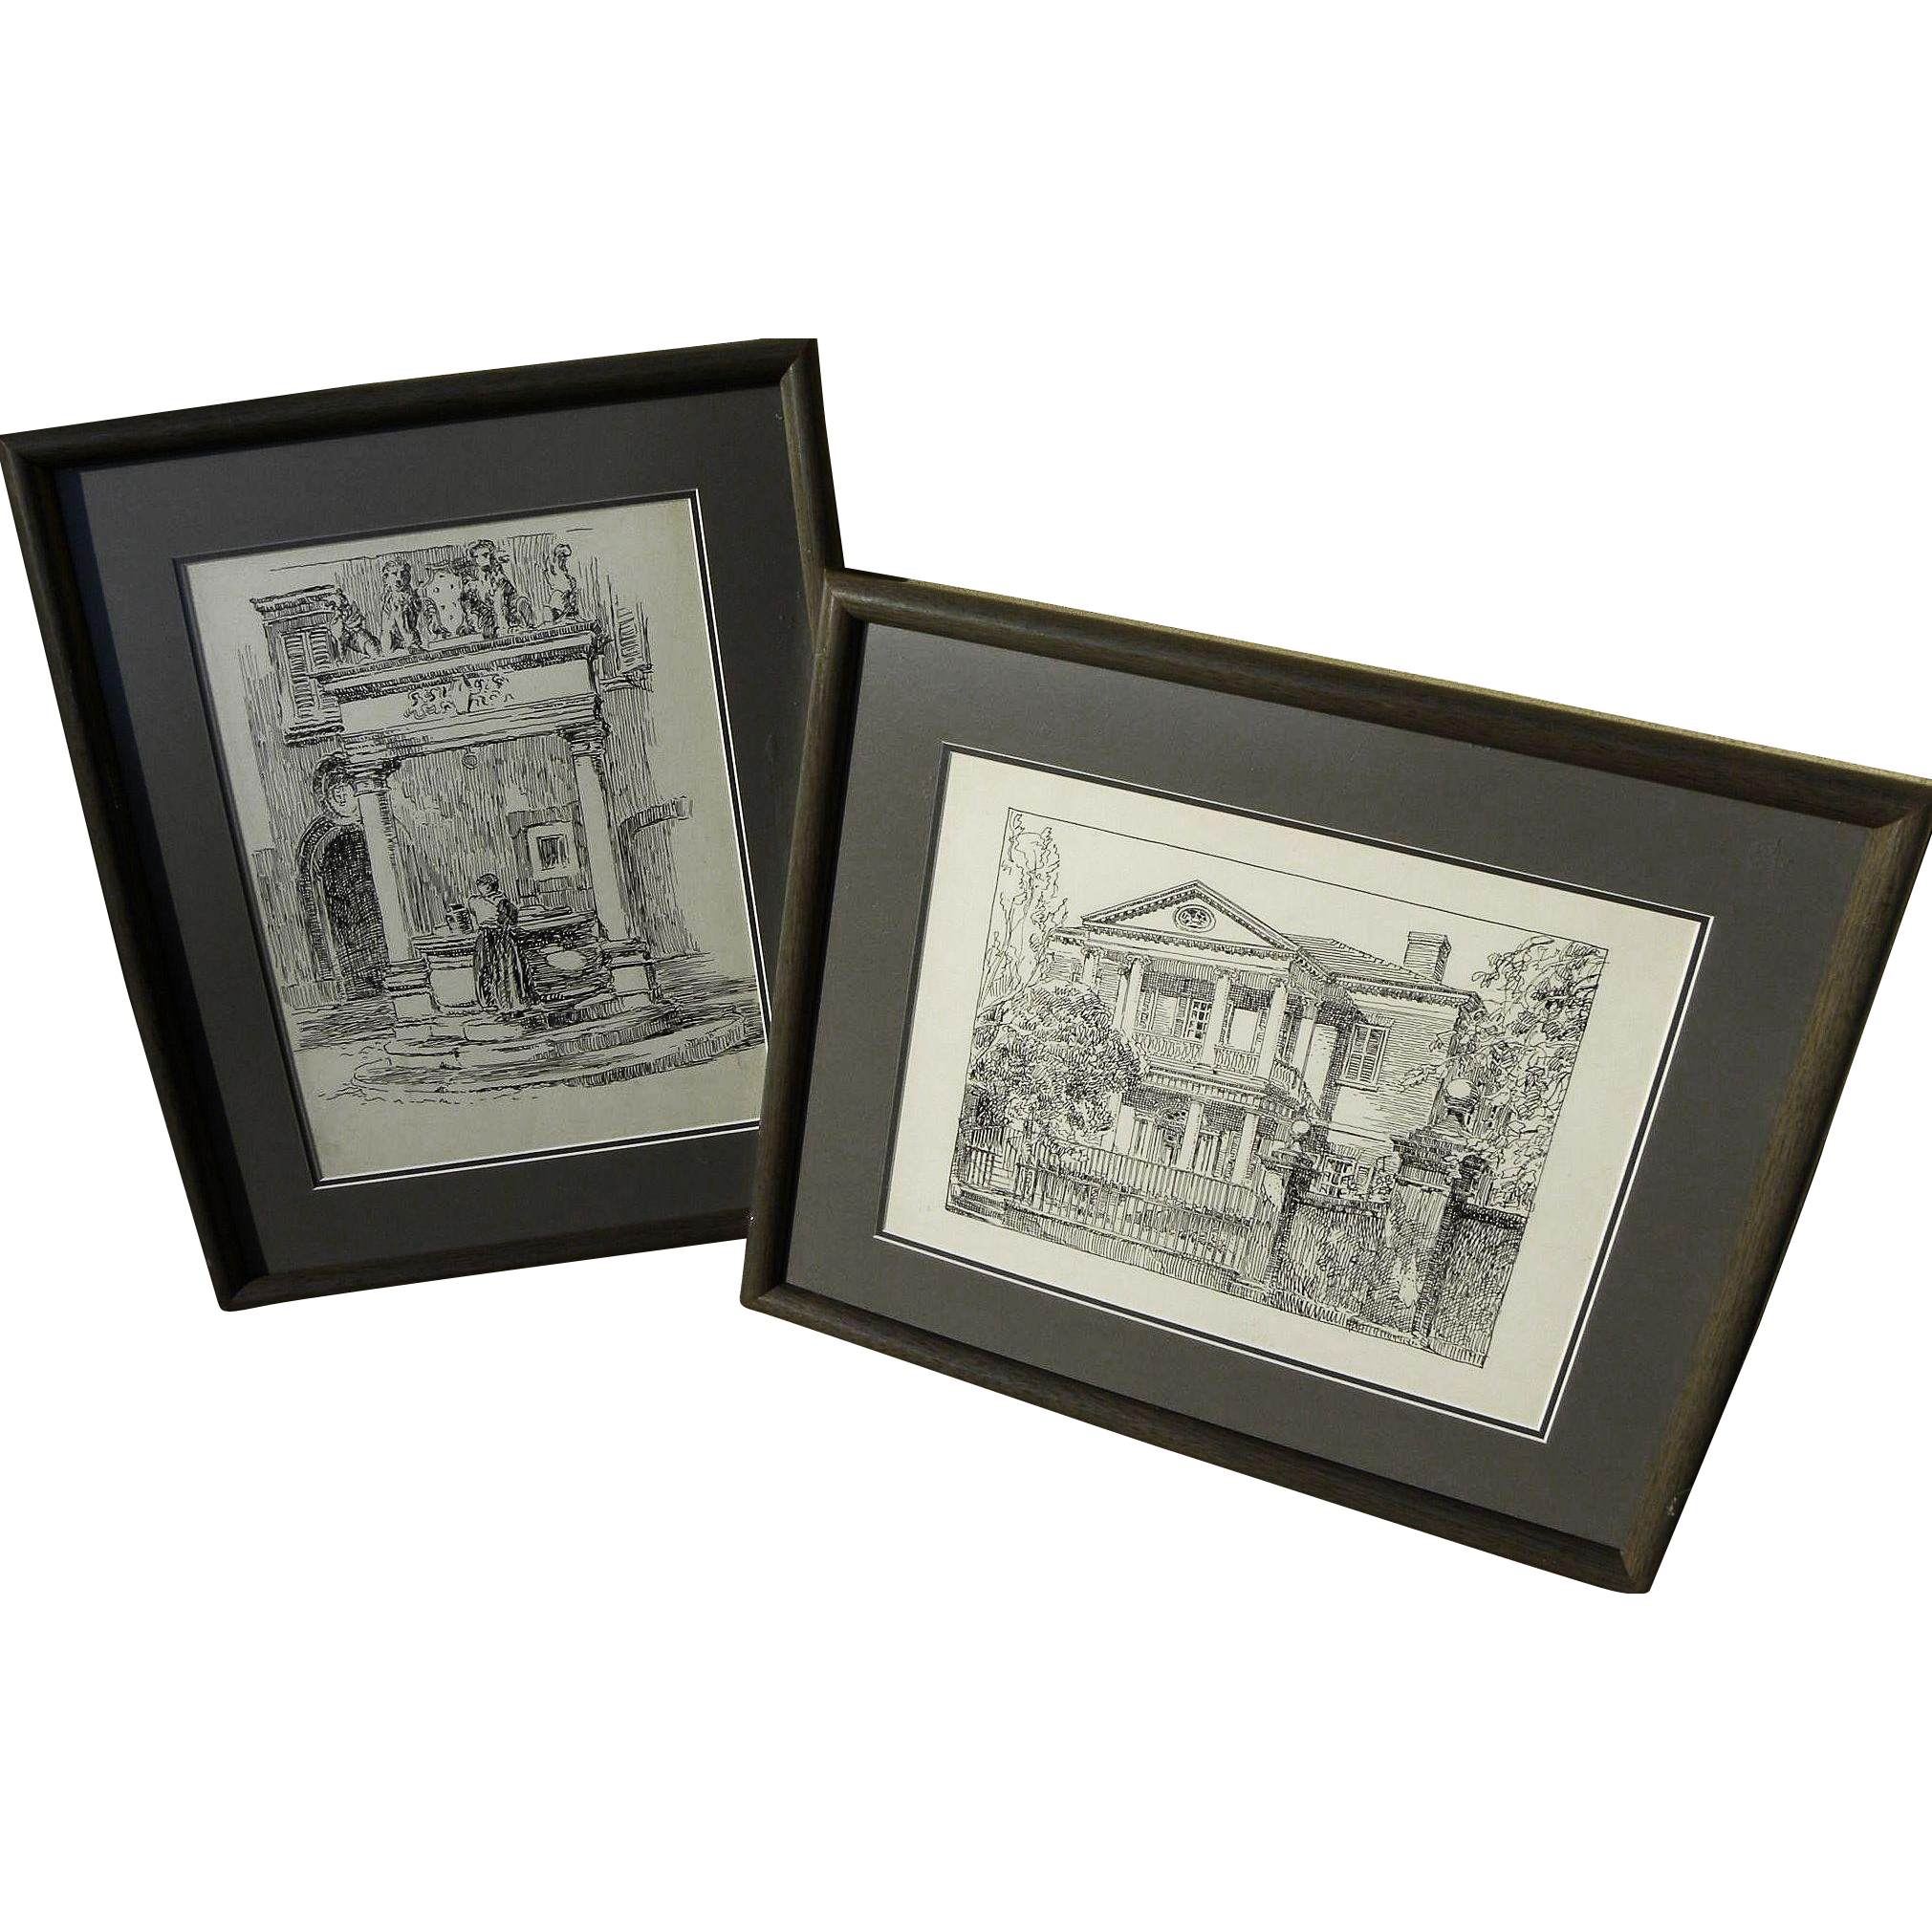 Pair of old ink drawings of gracious southern home and European fountain with figure